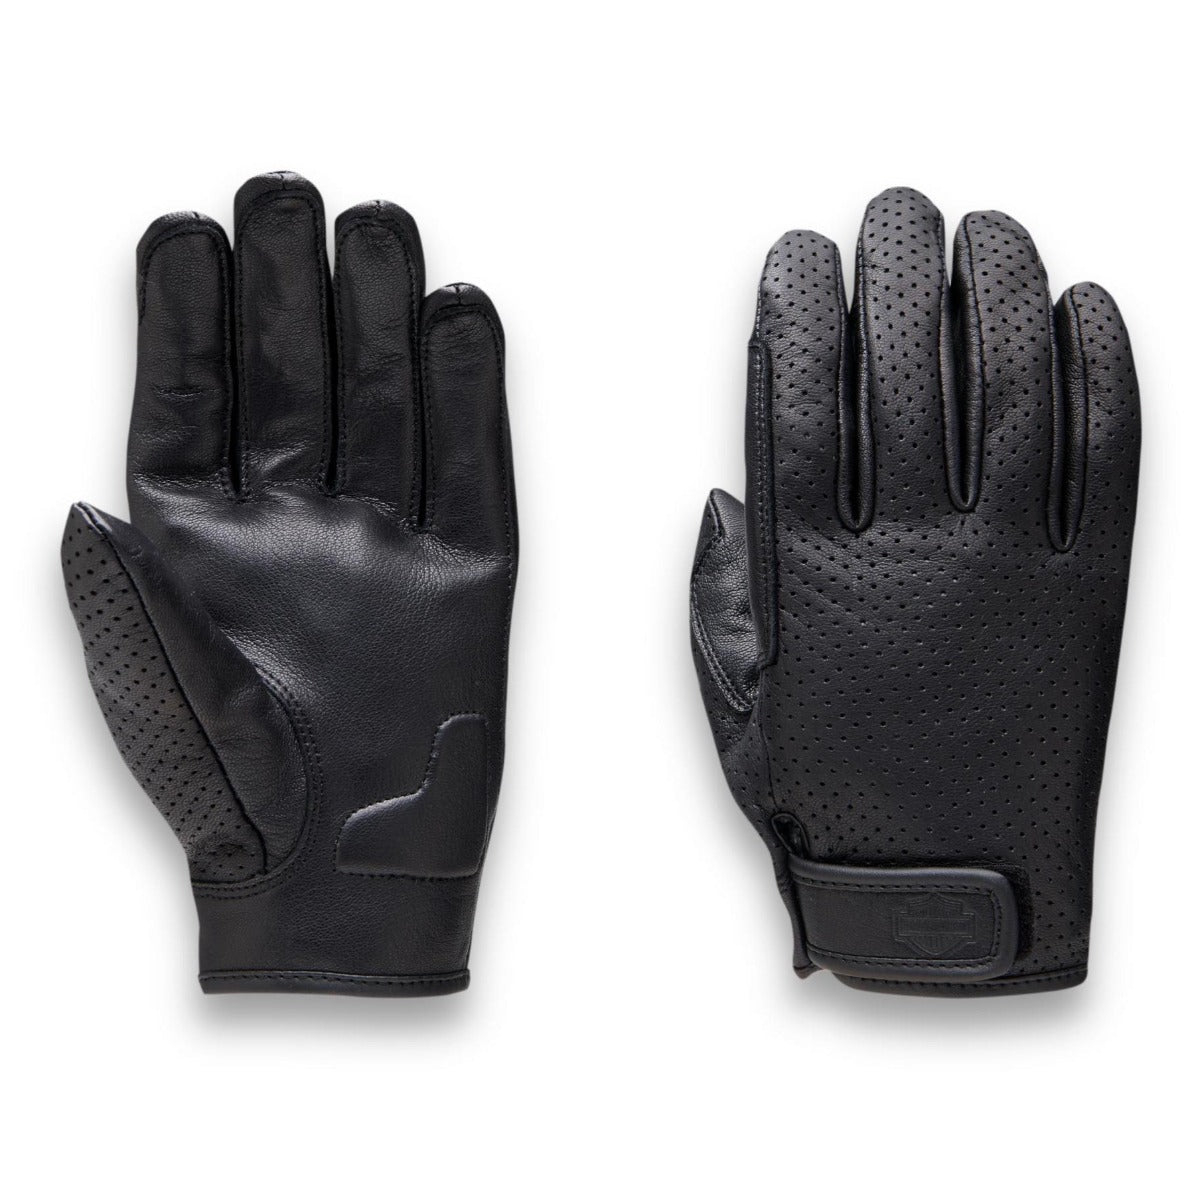 GLOVES-RIDING,LEATHER,BLACK